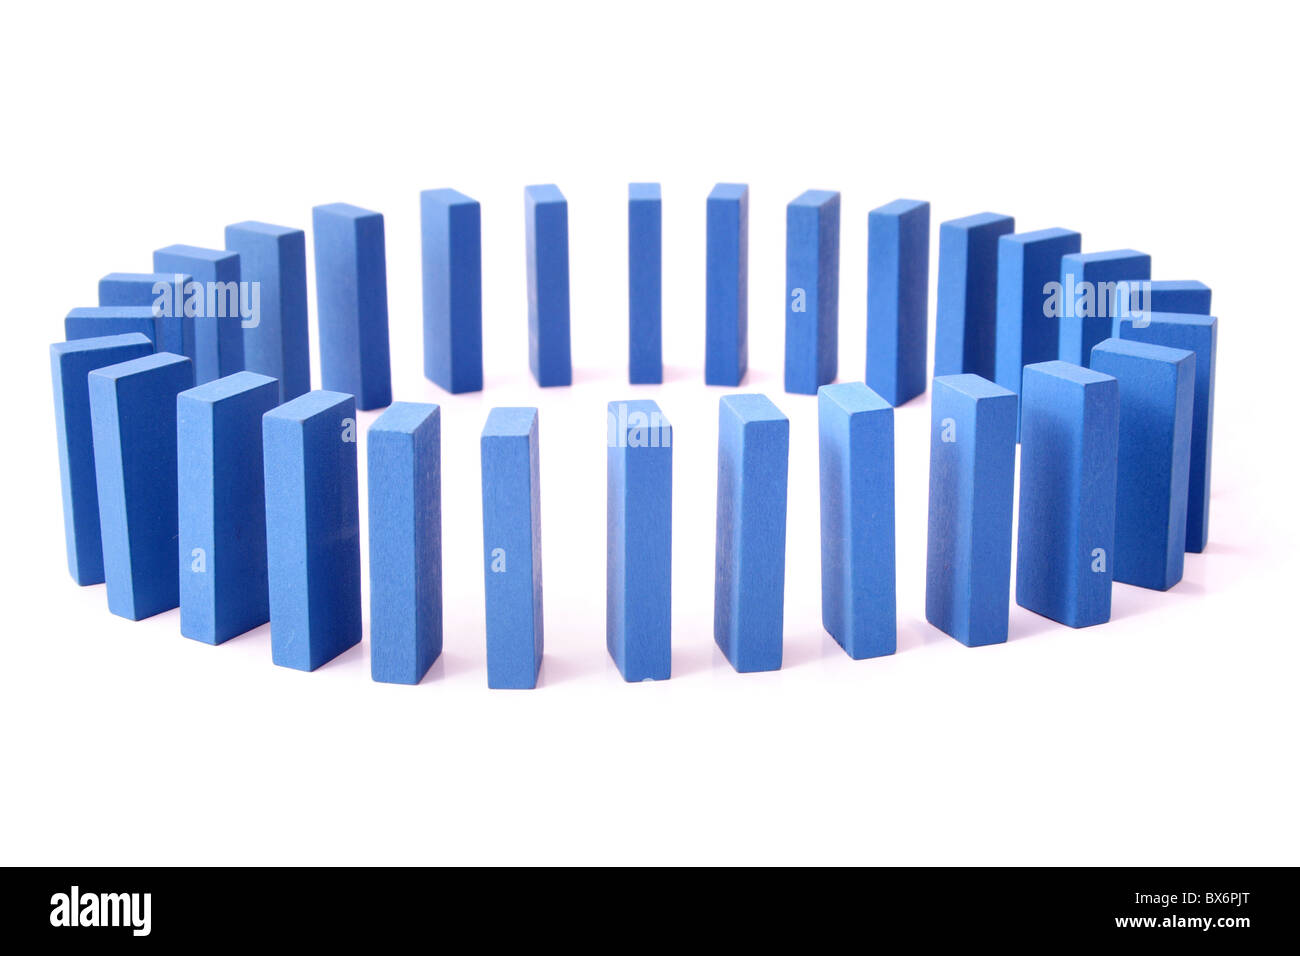 A circle of blue dominoes. All isolated on white background. - Stock Image